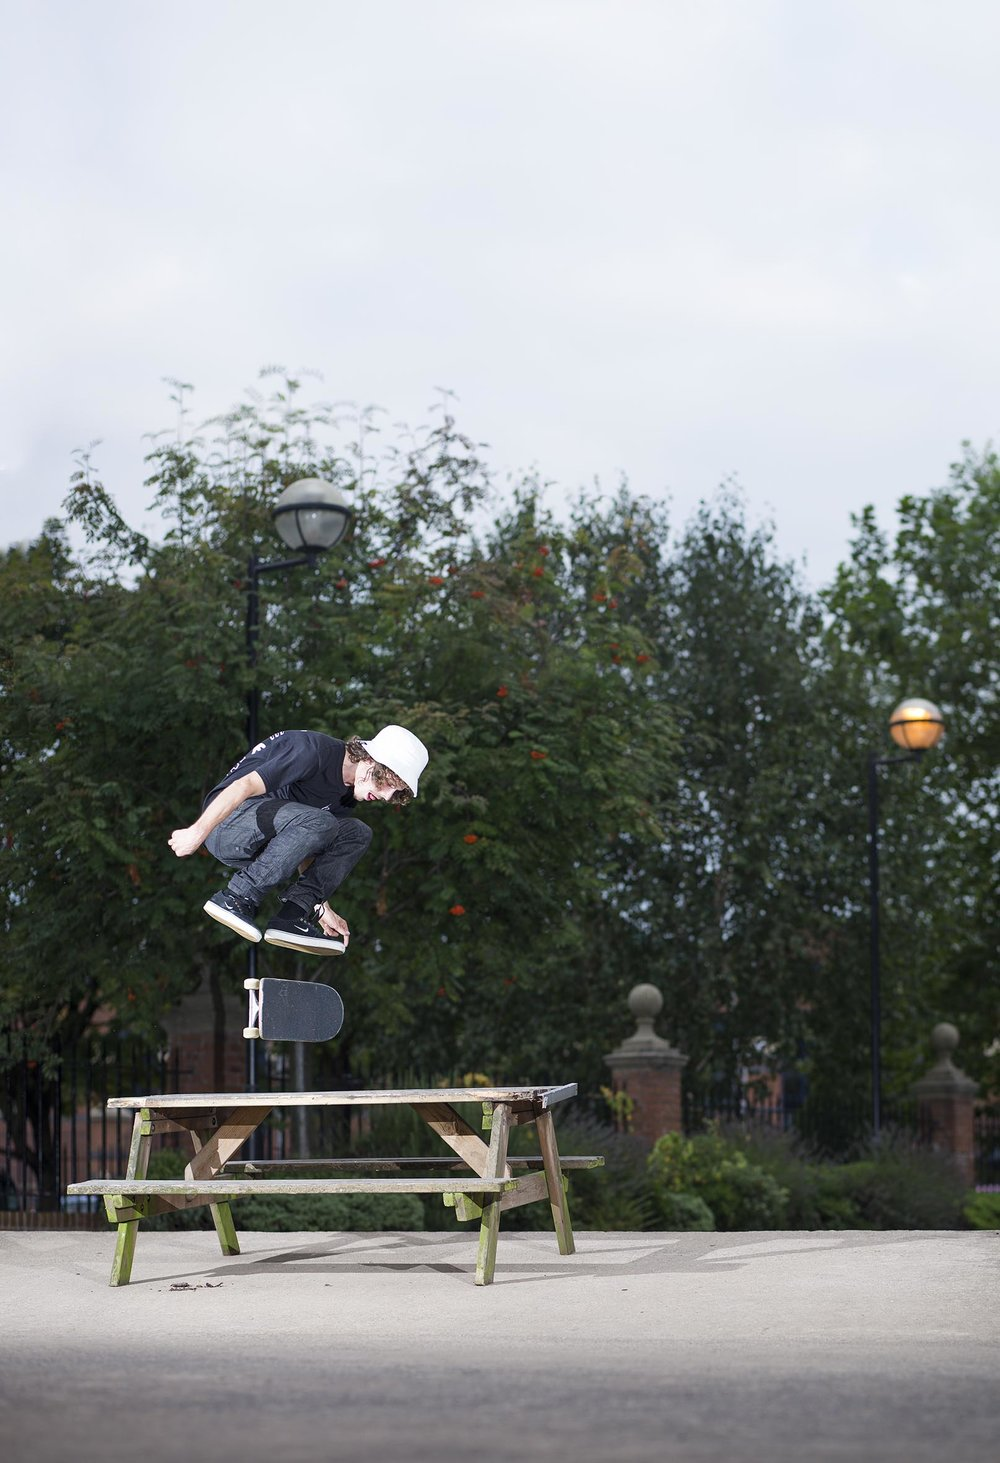 Foz - switch kickflip